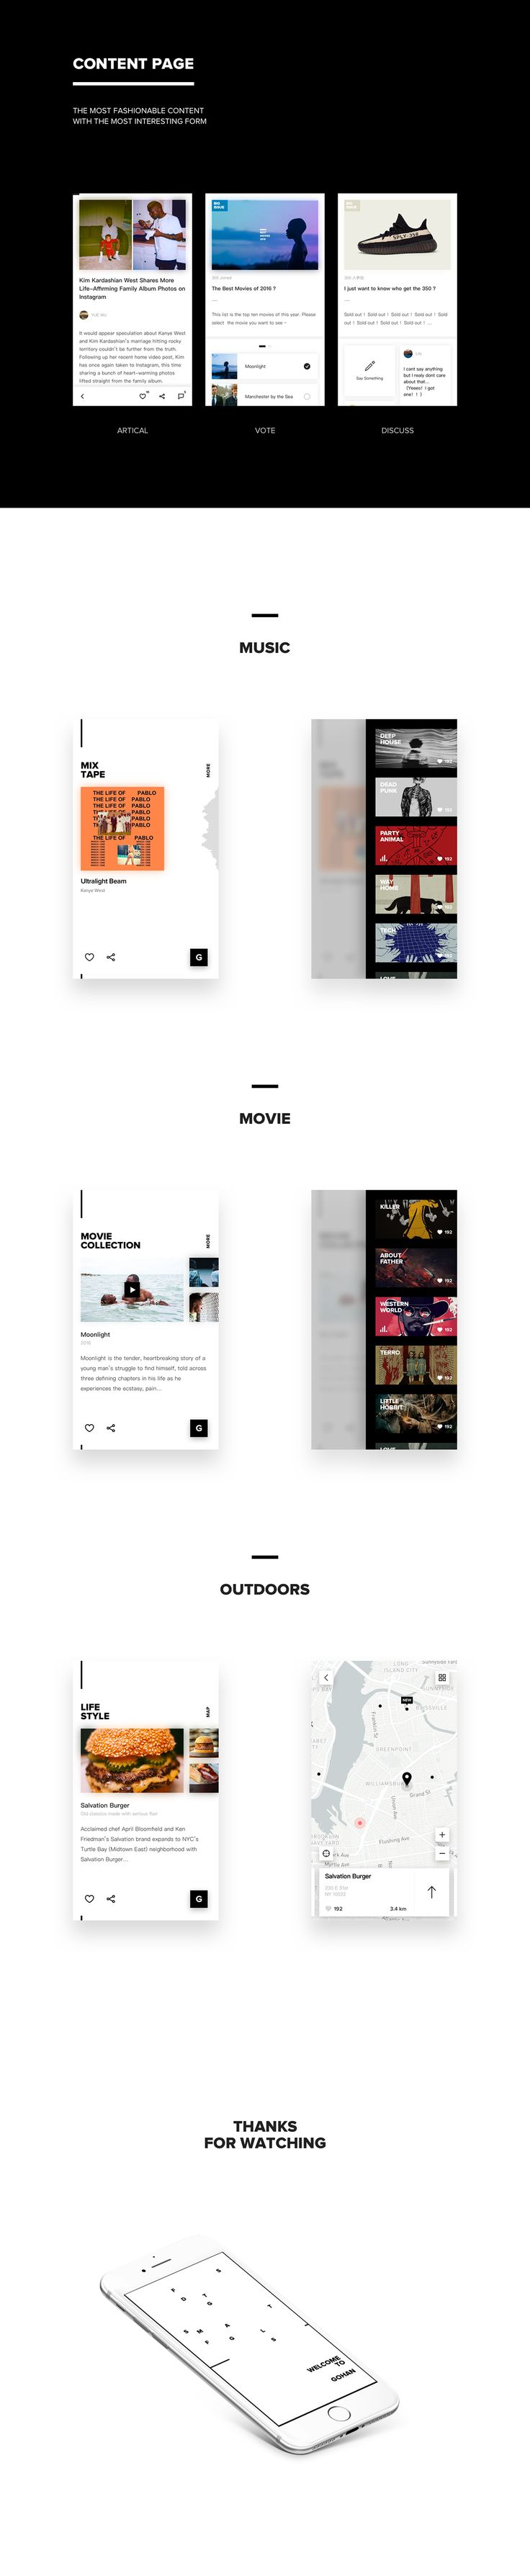 GOHAN - App Design on Behance